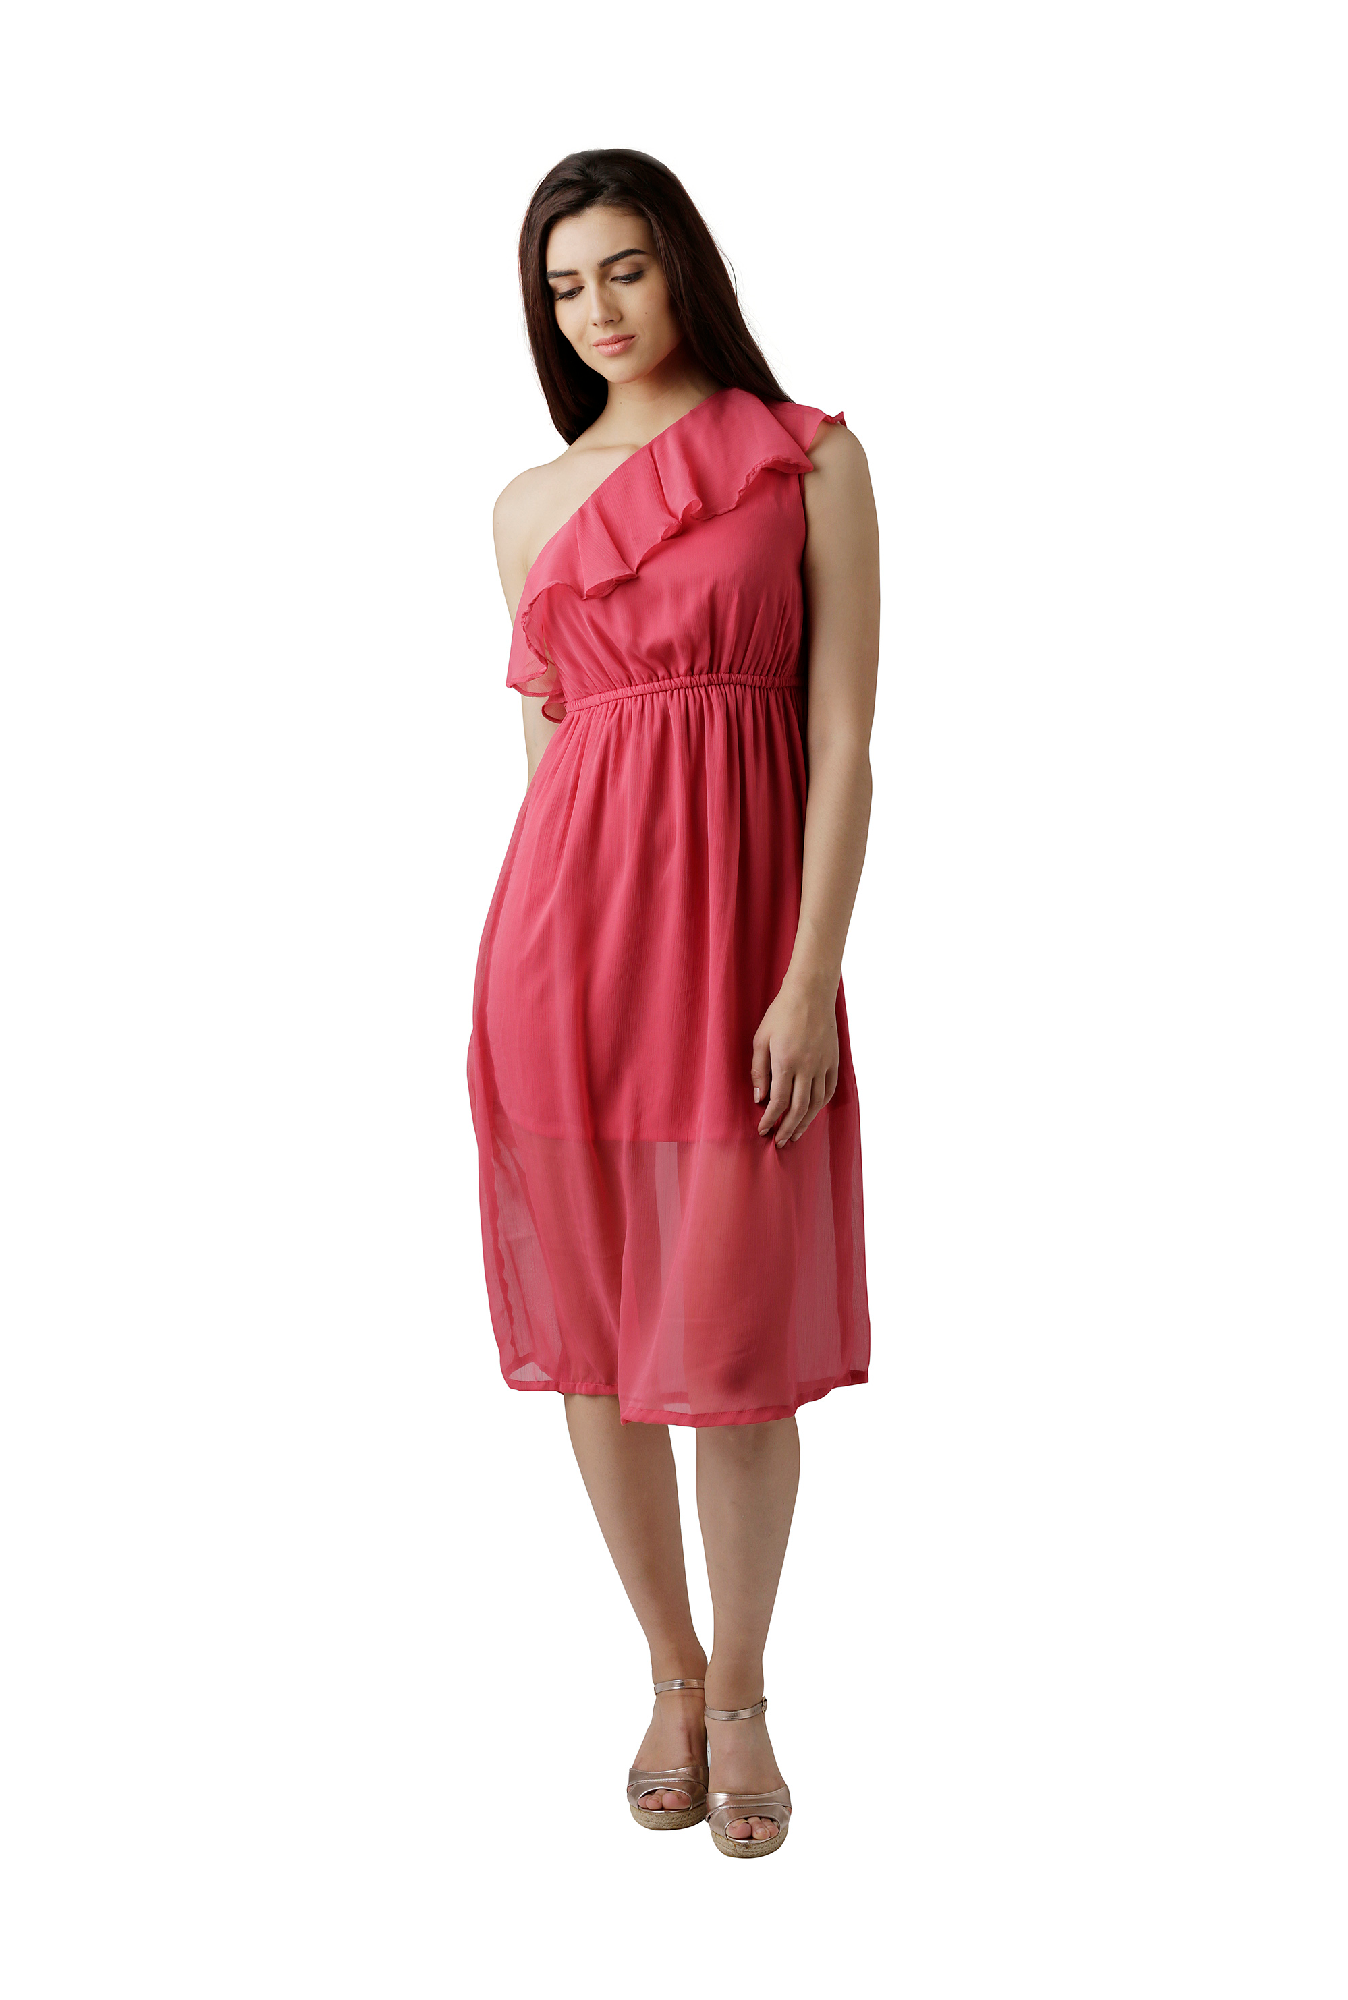 561f97ce2b80 Buy Miss Chase Pink Relaxed Fit Midi Dress for Women Online ...